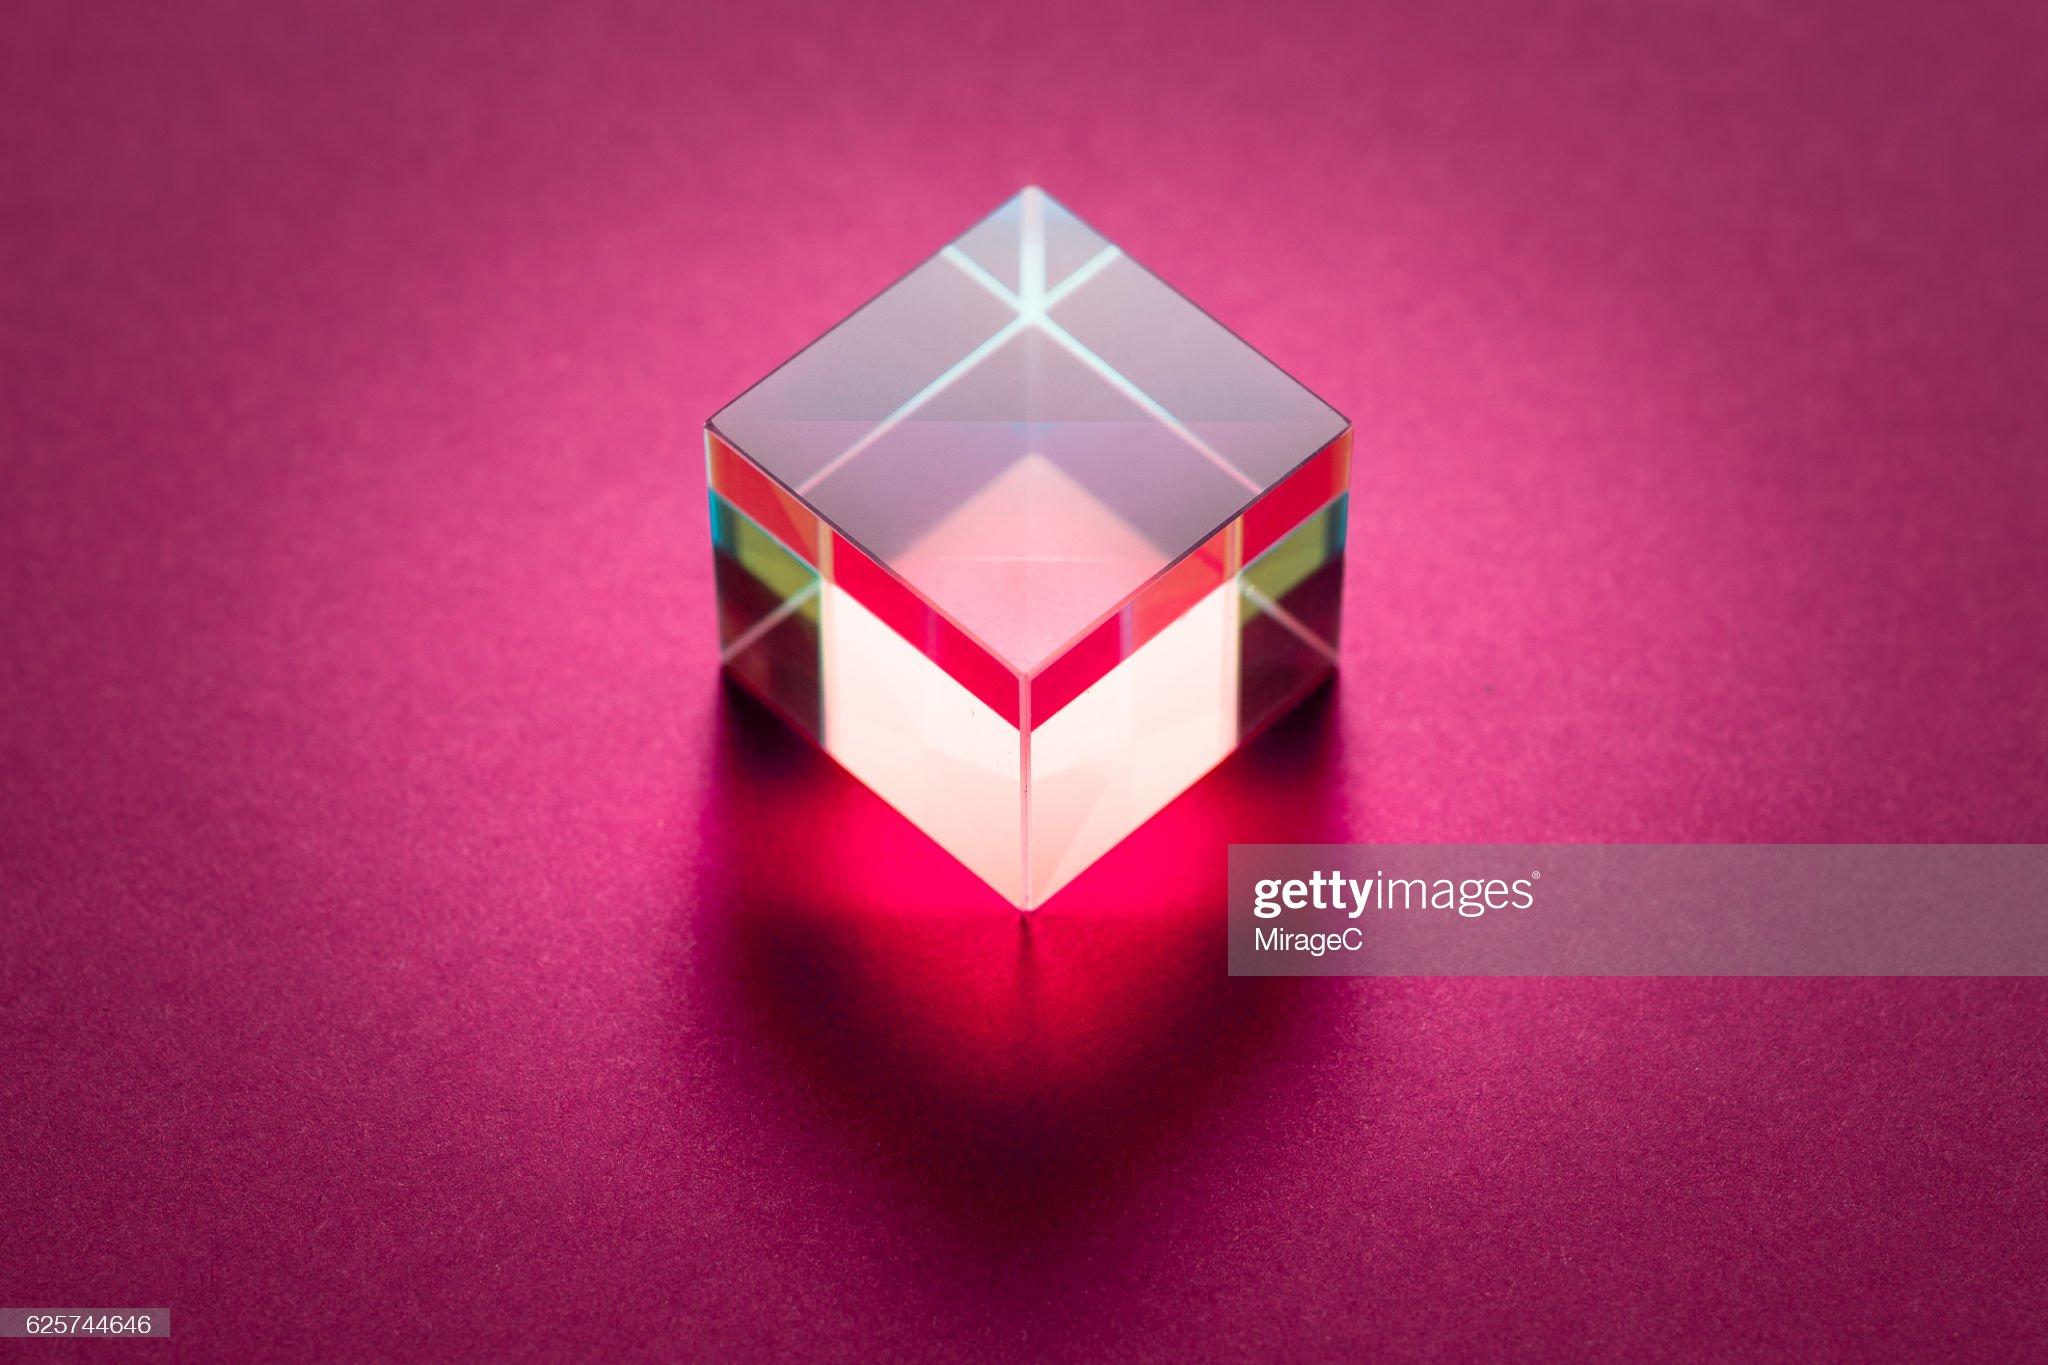 Cube Prism on Pink Background : Stock Photo